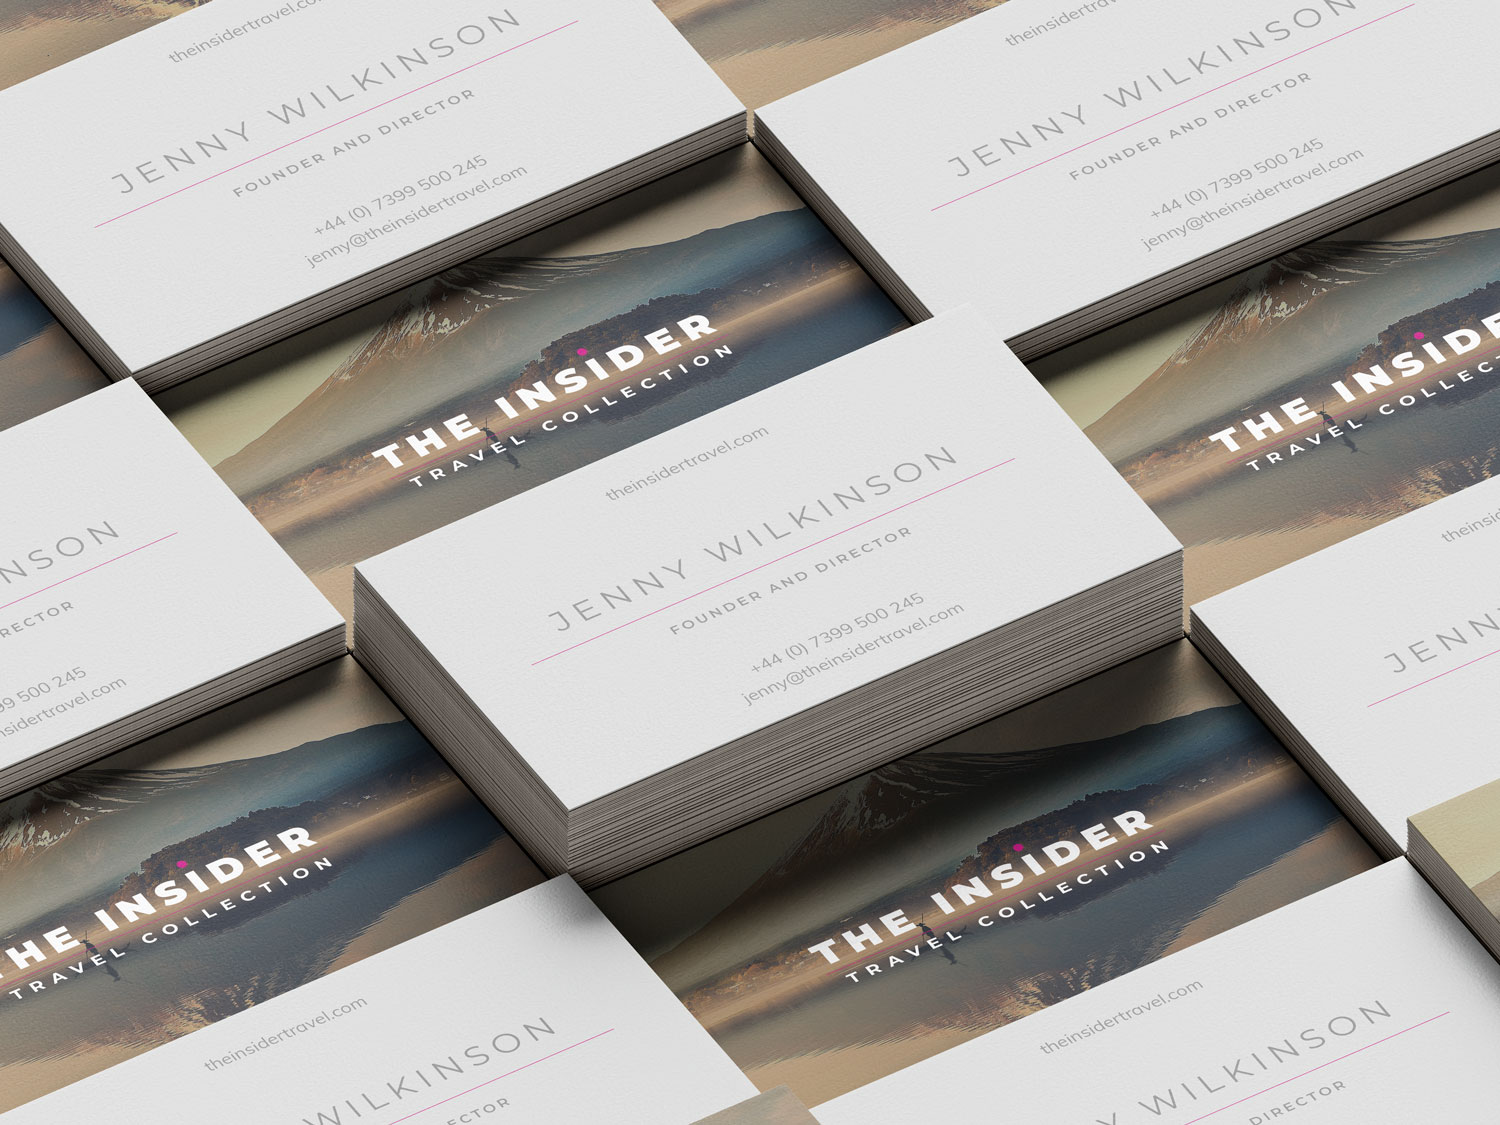 Insider Travel Collection business cards